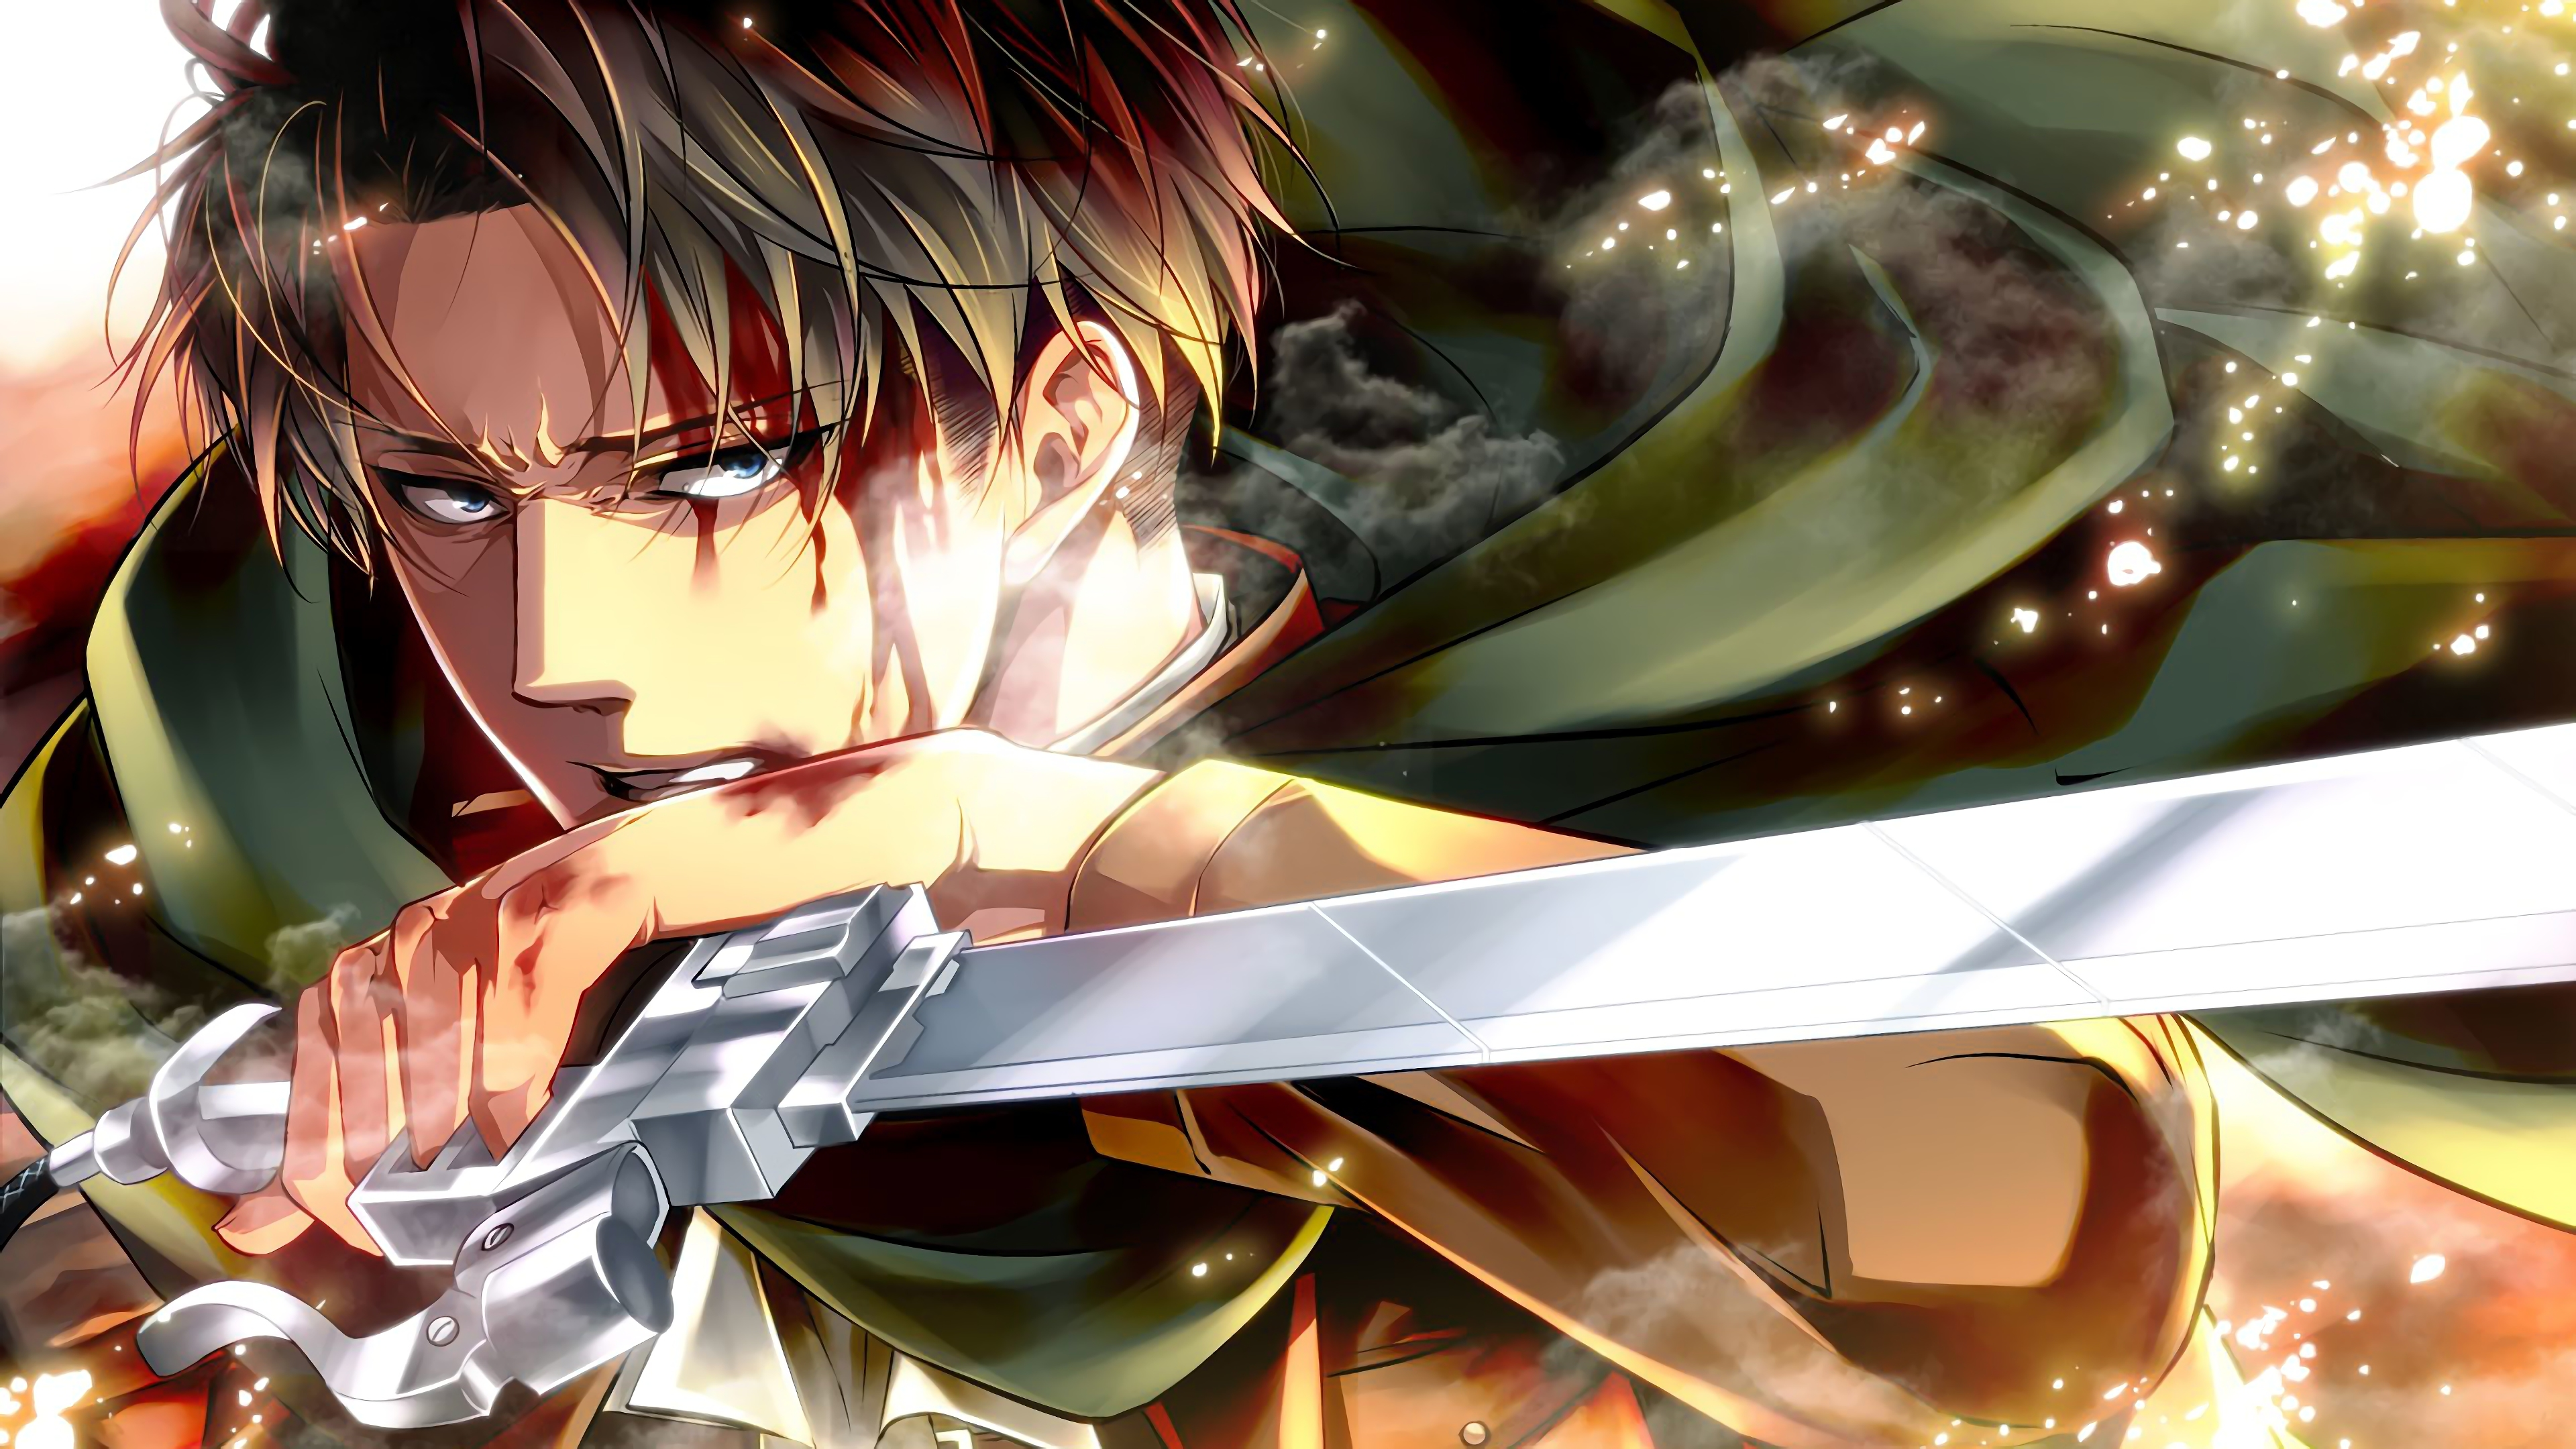 Attack On Titan 4k Ultra Hd Wallpaper Background Image 3840x2160 Id 937881 Wallpaper Abyss